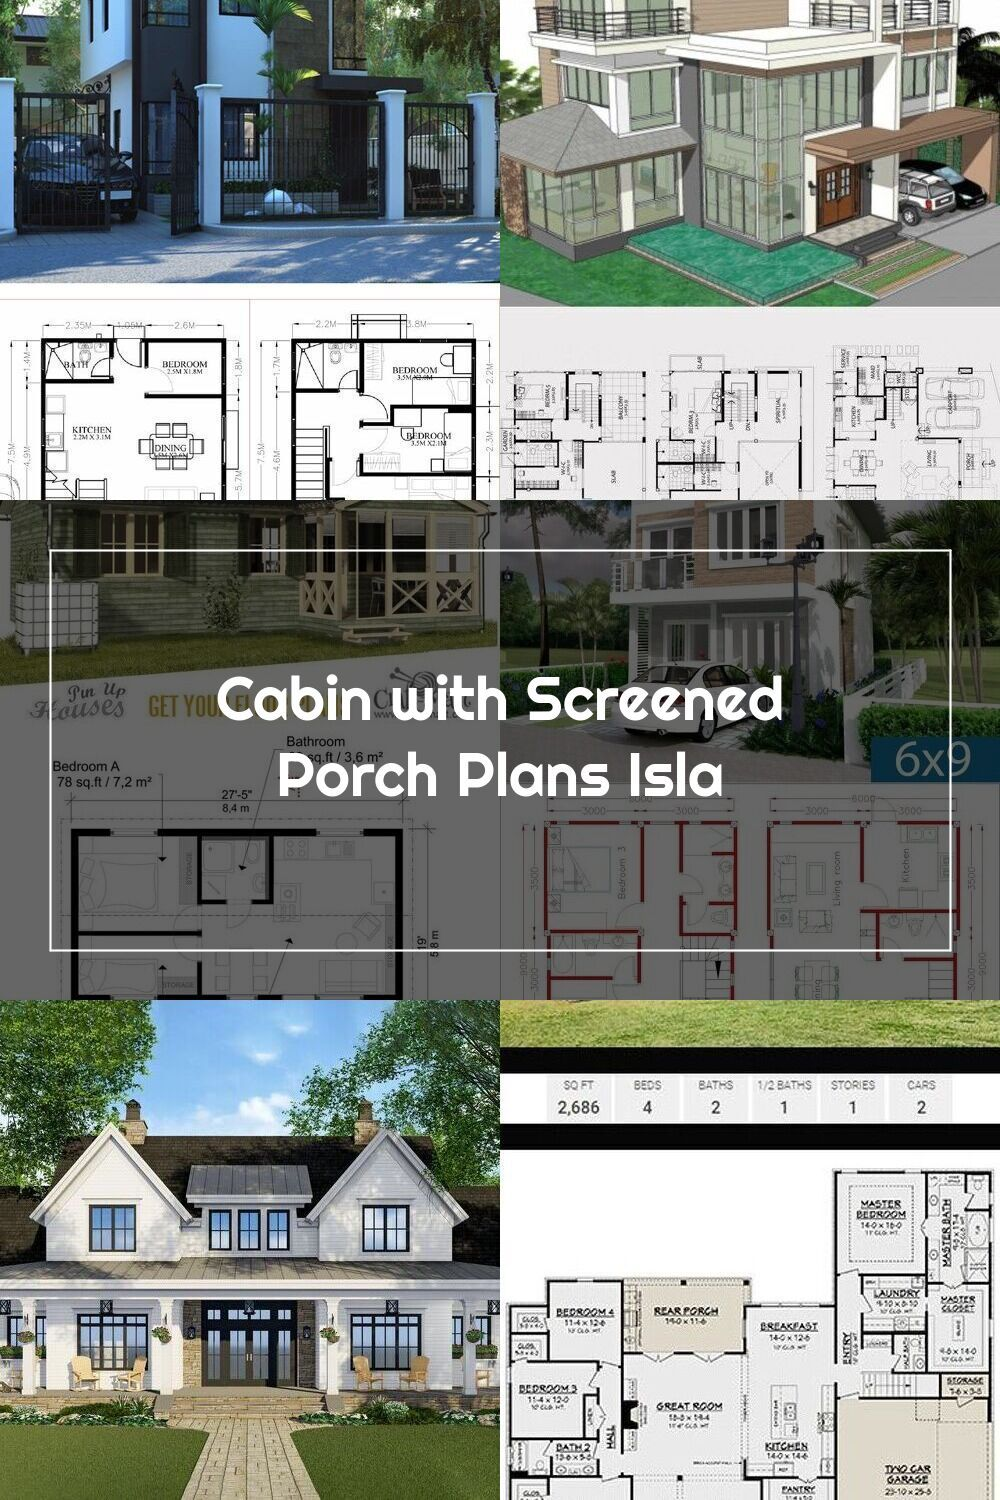 Small And Tiny Home Plans With Cost To Build Cabin With Screened Porch Pl In 2020 Tiny House Plans Porch Plans House Plans